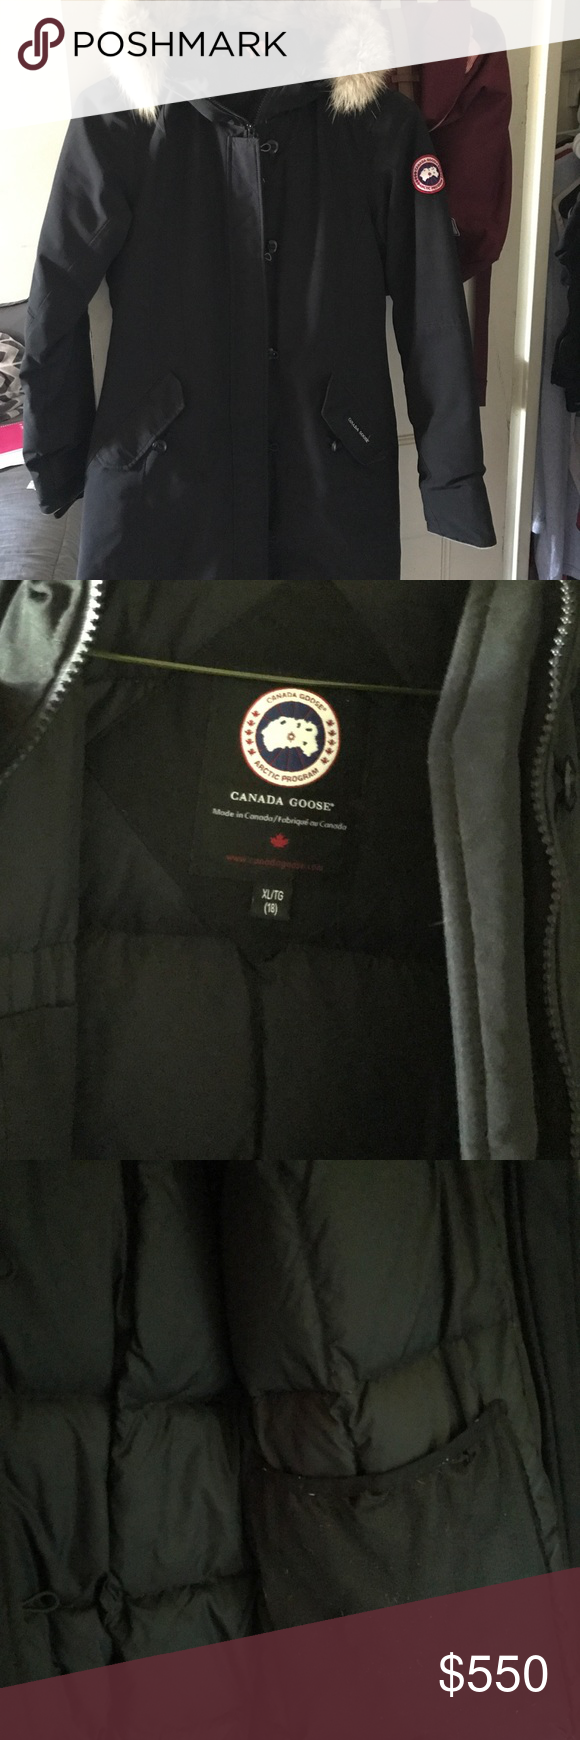 8f4314a3f3cf Brittania Parka - Big Kids size Xl (18) Gently used kids Canada goose in  the color black. The seam of the left pocket has a small hole as shown in  the ...